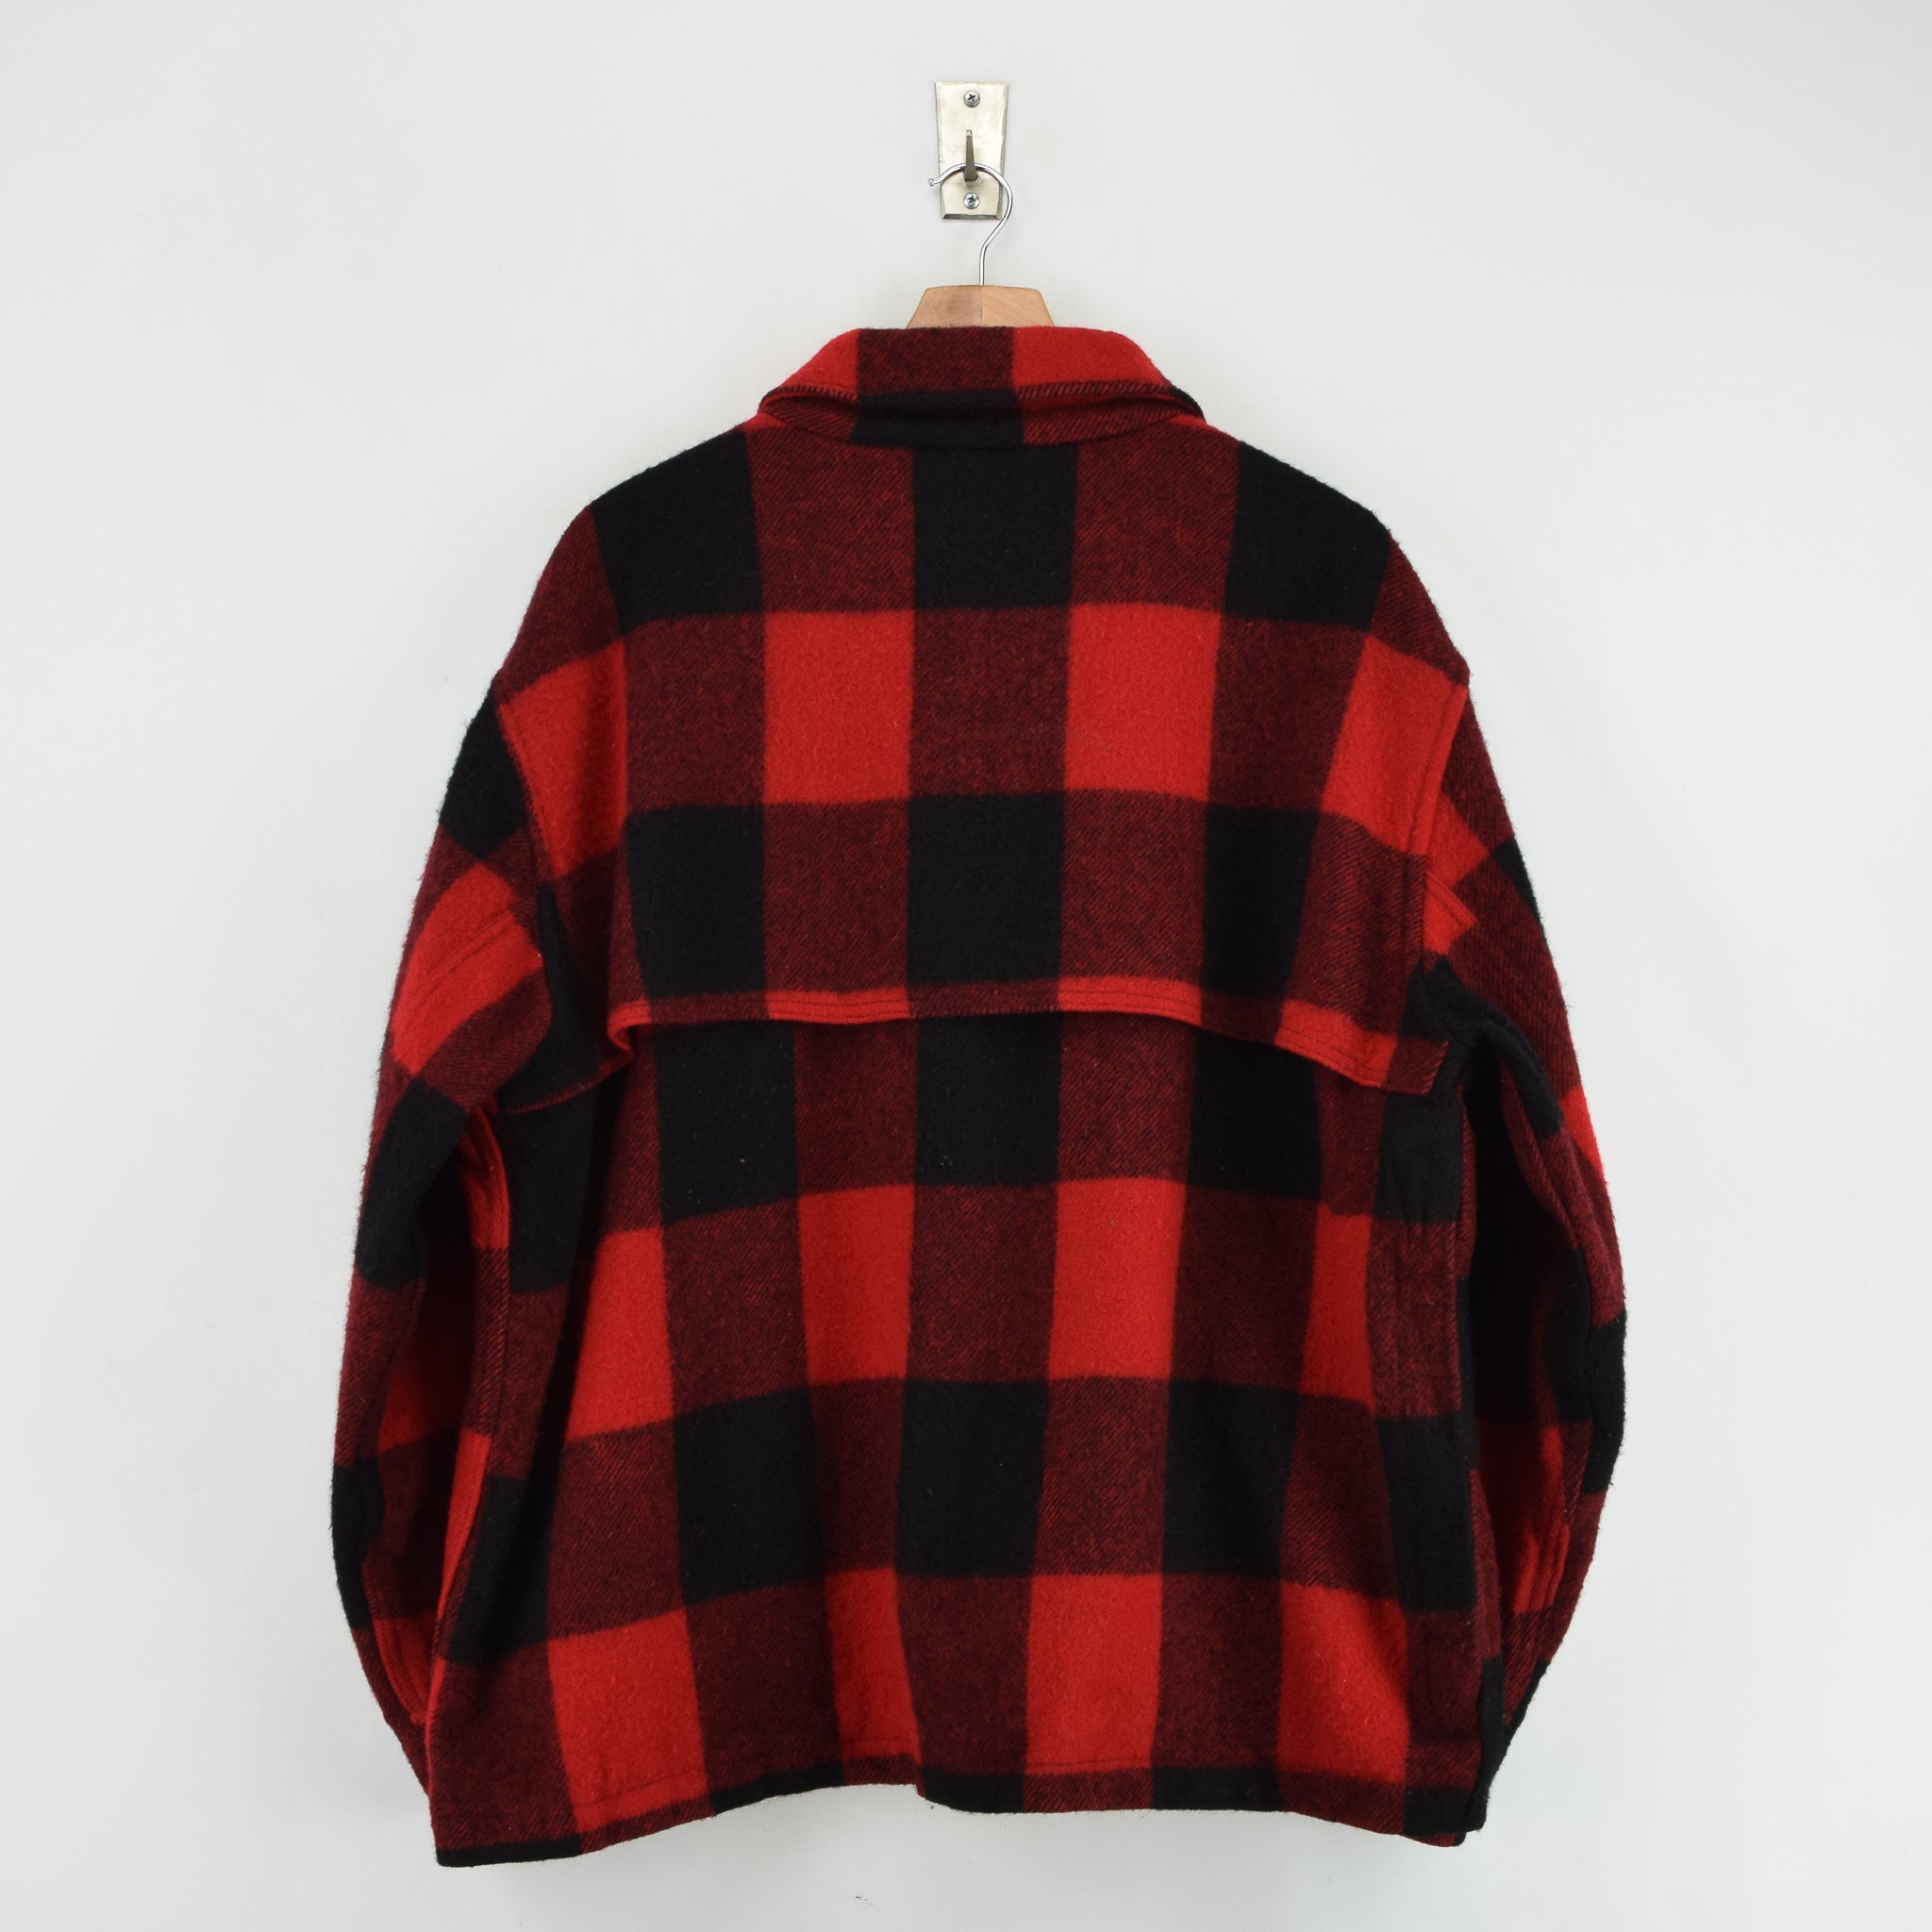 Vintage 70s Woolrich Buffalo Plaid Hunting Mackinaw Shirt Jacket Made in USA XXL back